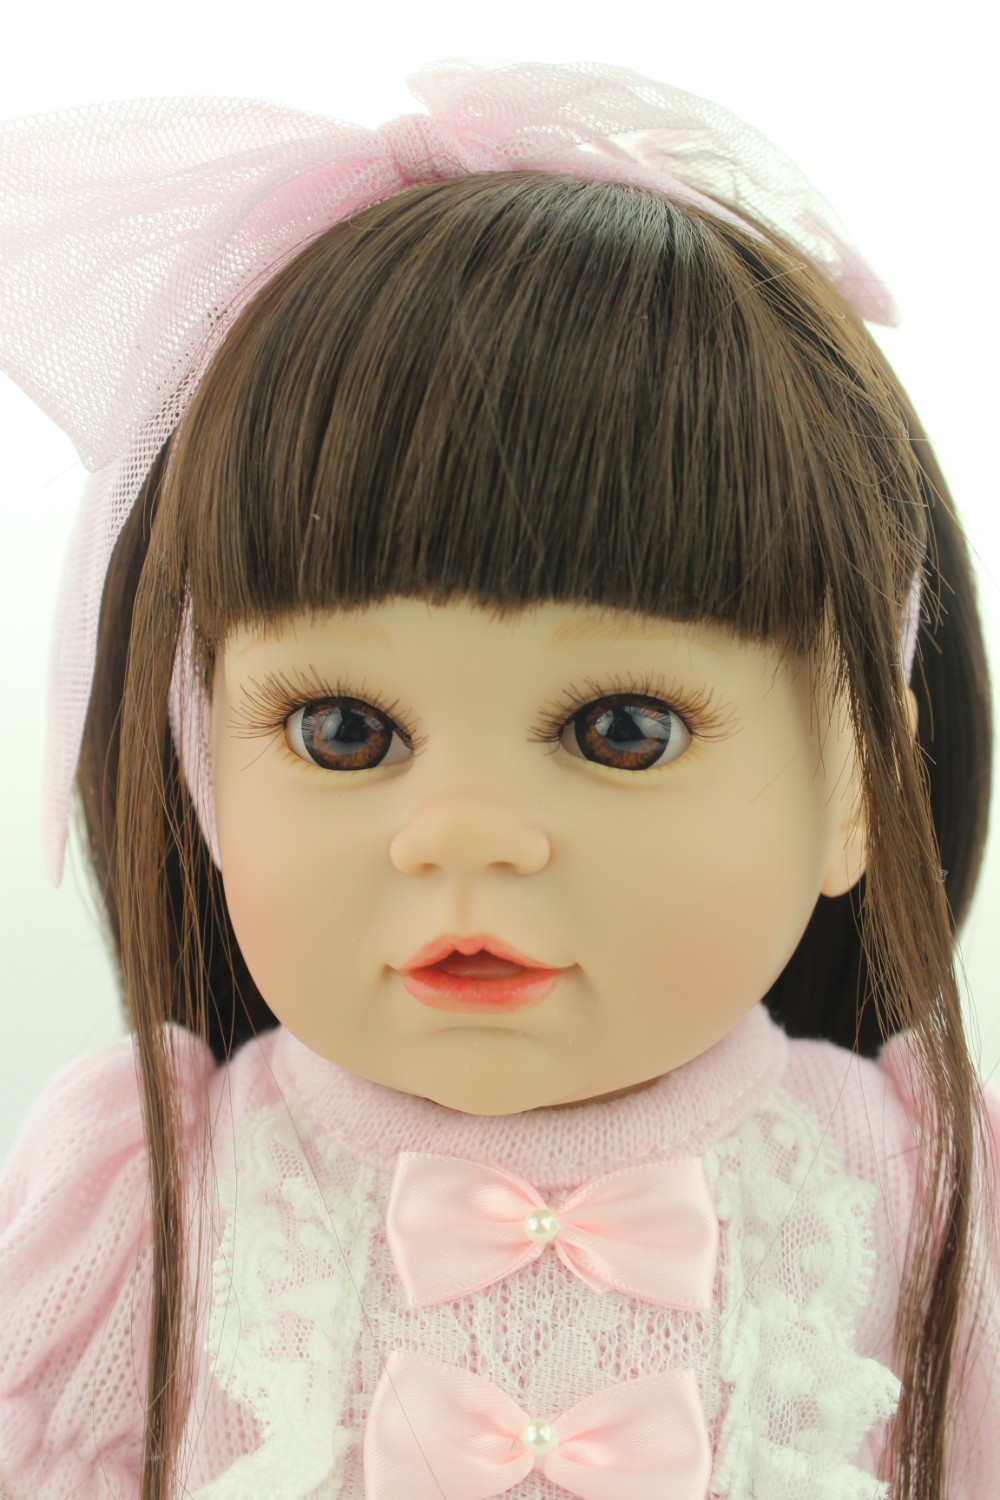 New model Style 16 inches Baby Doll Fat American Girl Design Reborn Living doll Soft Solid Silicone Toys new 23 inches lm230wf5 tld1 1920 x1080 lm230wf5 tld1 lm230wf5tld1 tld2